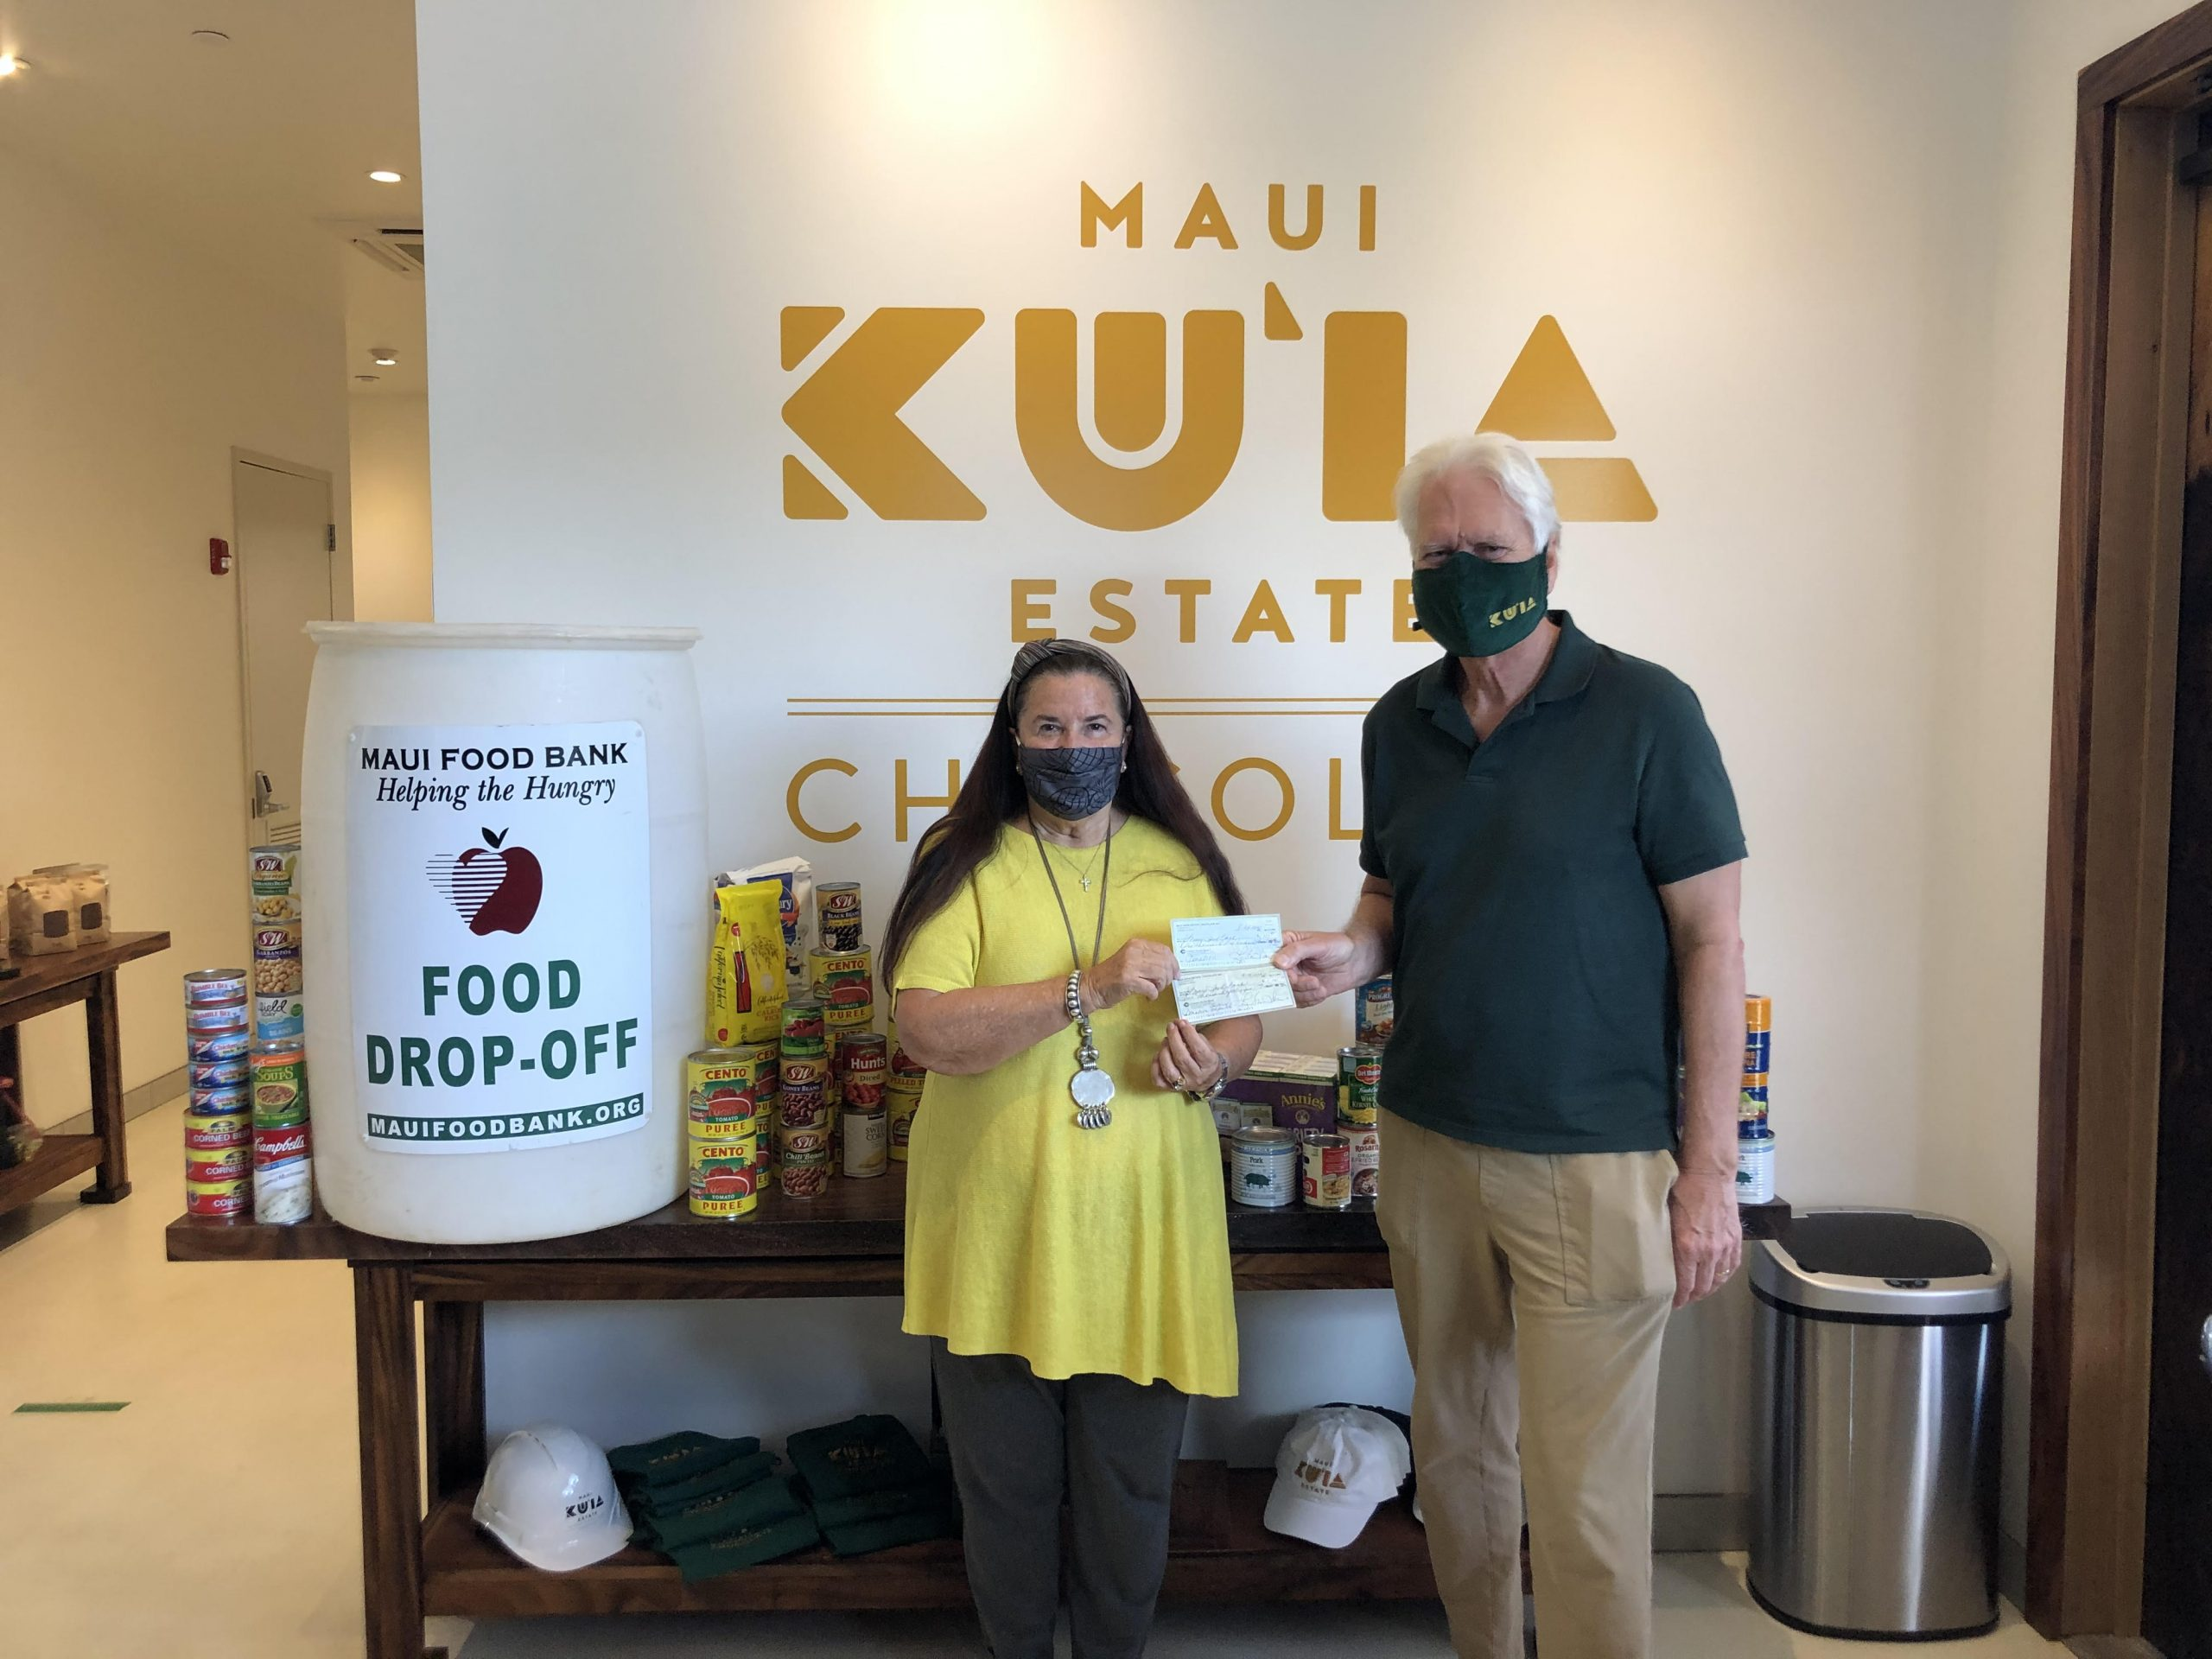 Maui Ku'ia Estate Chocolate Donates More than $100,000 in Sweets and Proceeds During Pandemic